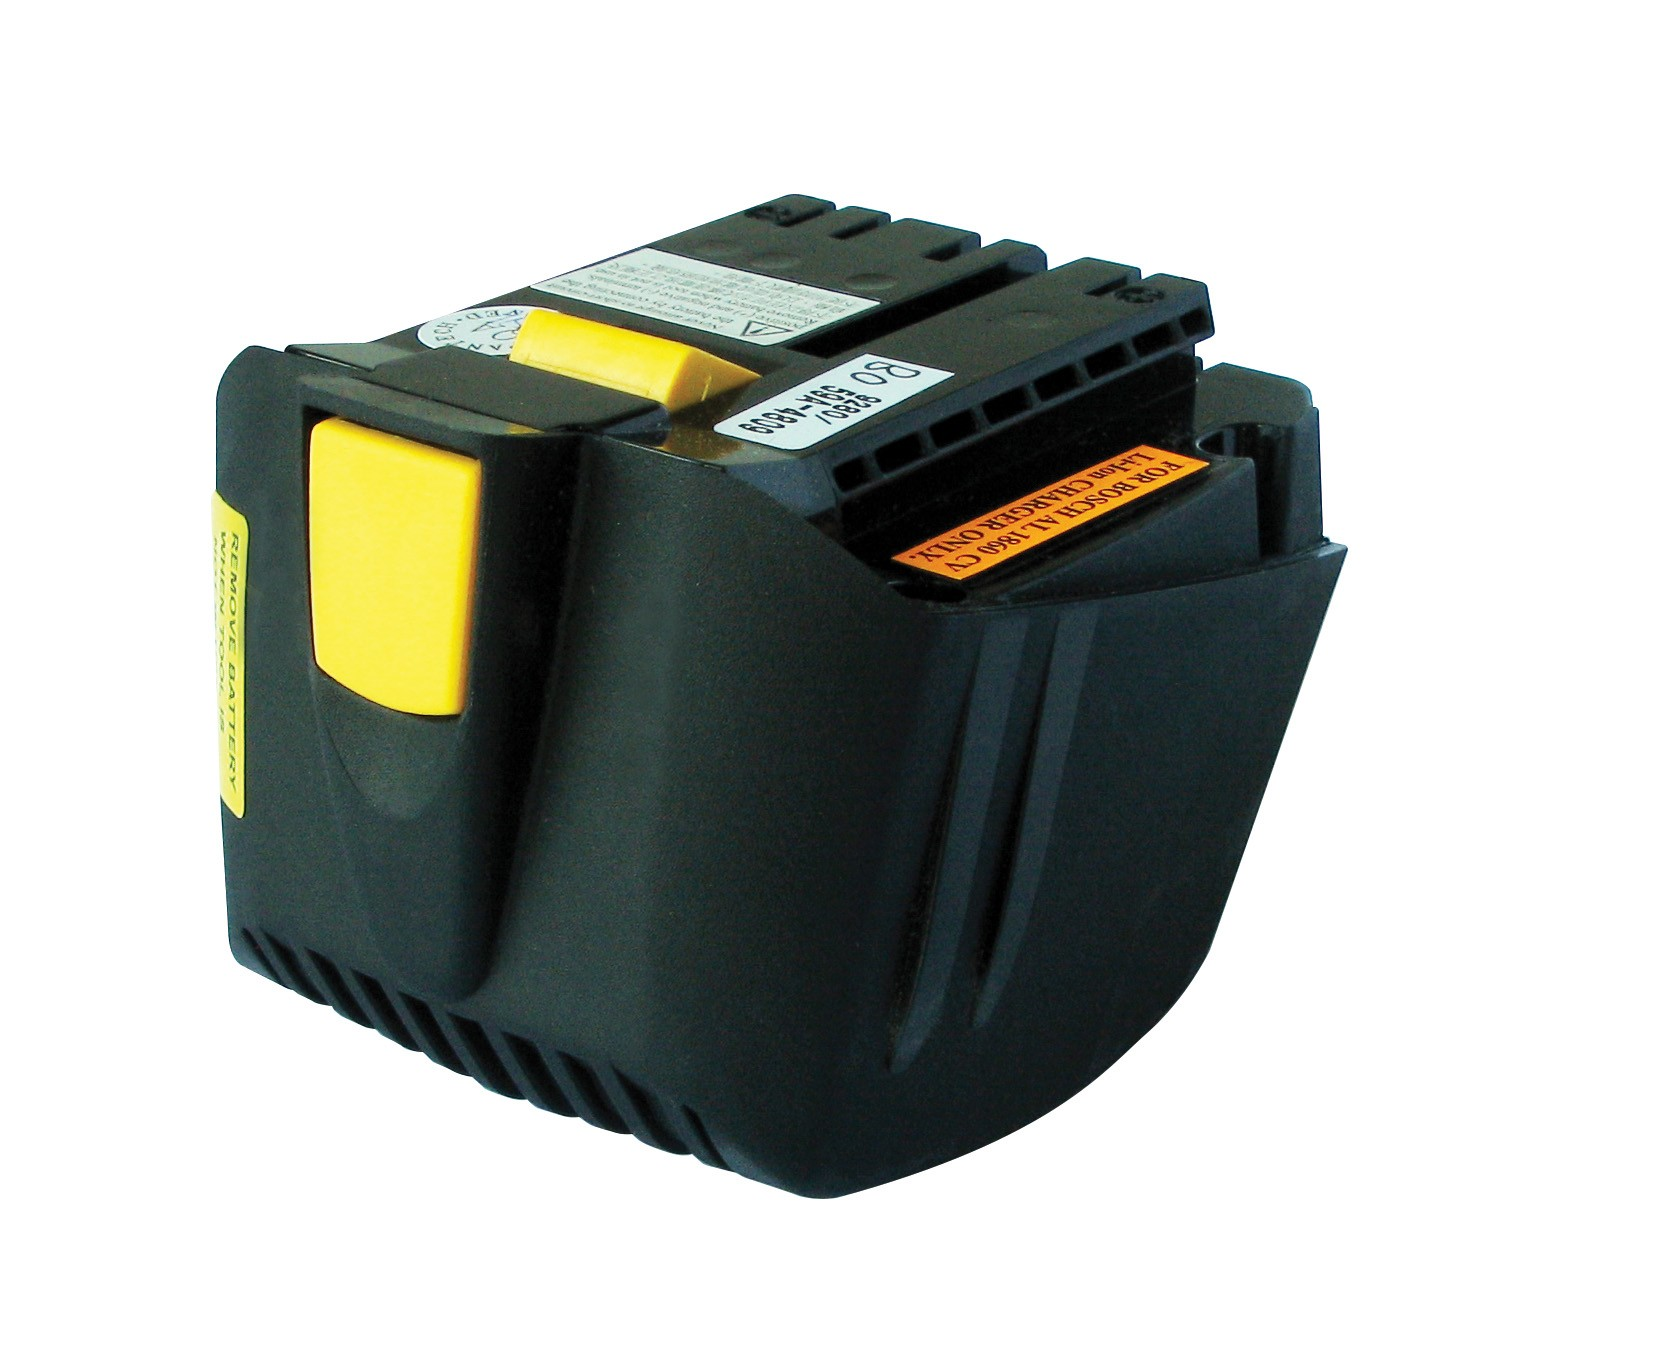 FRICTION WELD BATTERY FOR ZXT NEW MODEL 18v BLACK/YELLOW